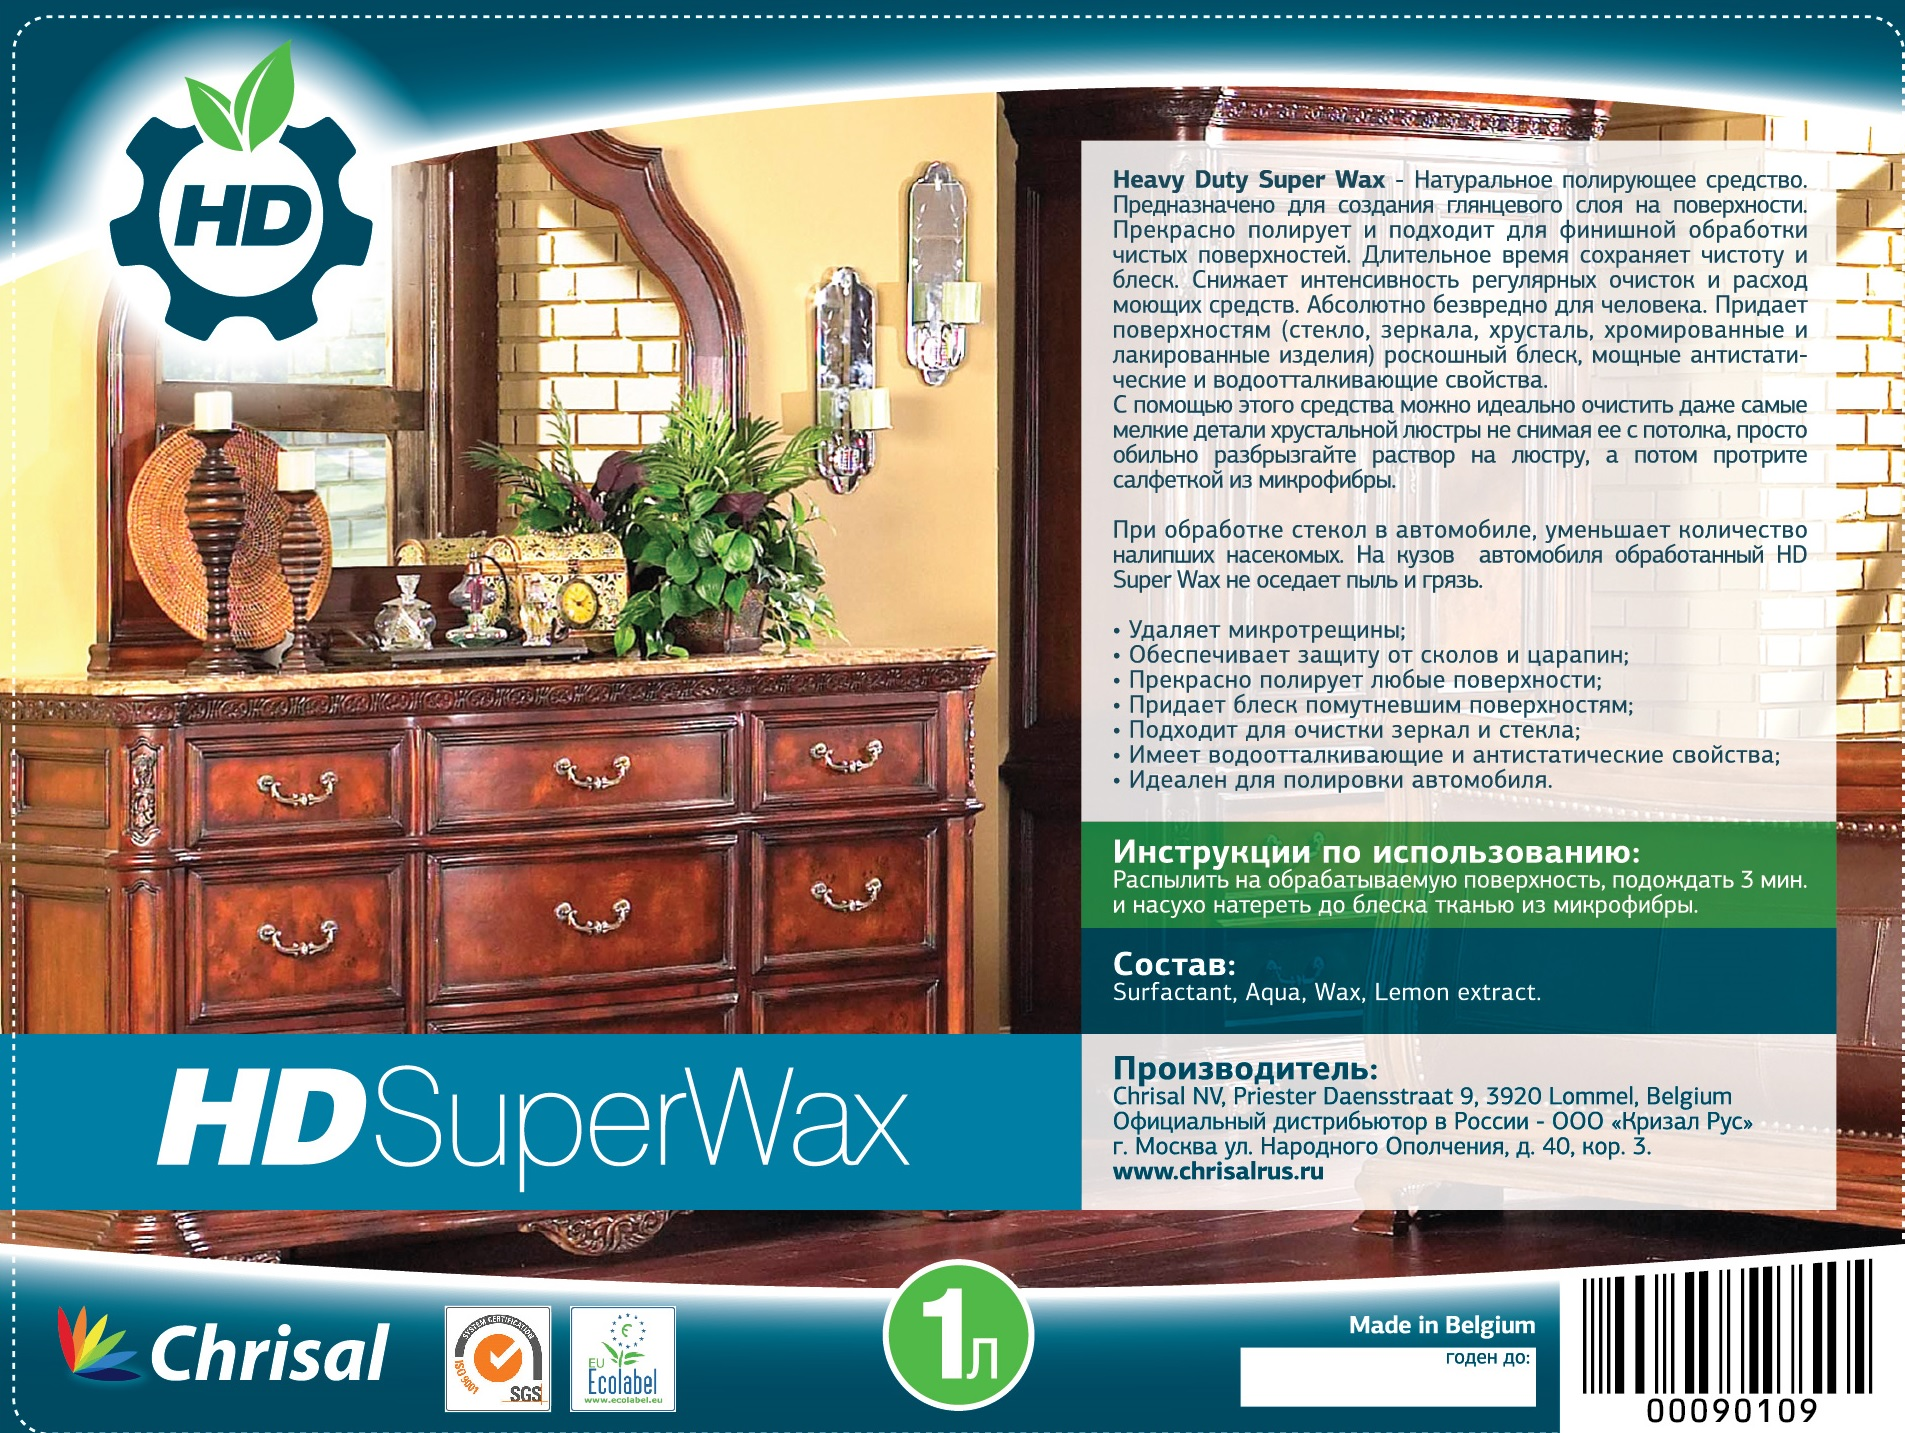 HD Super wax